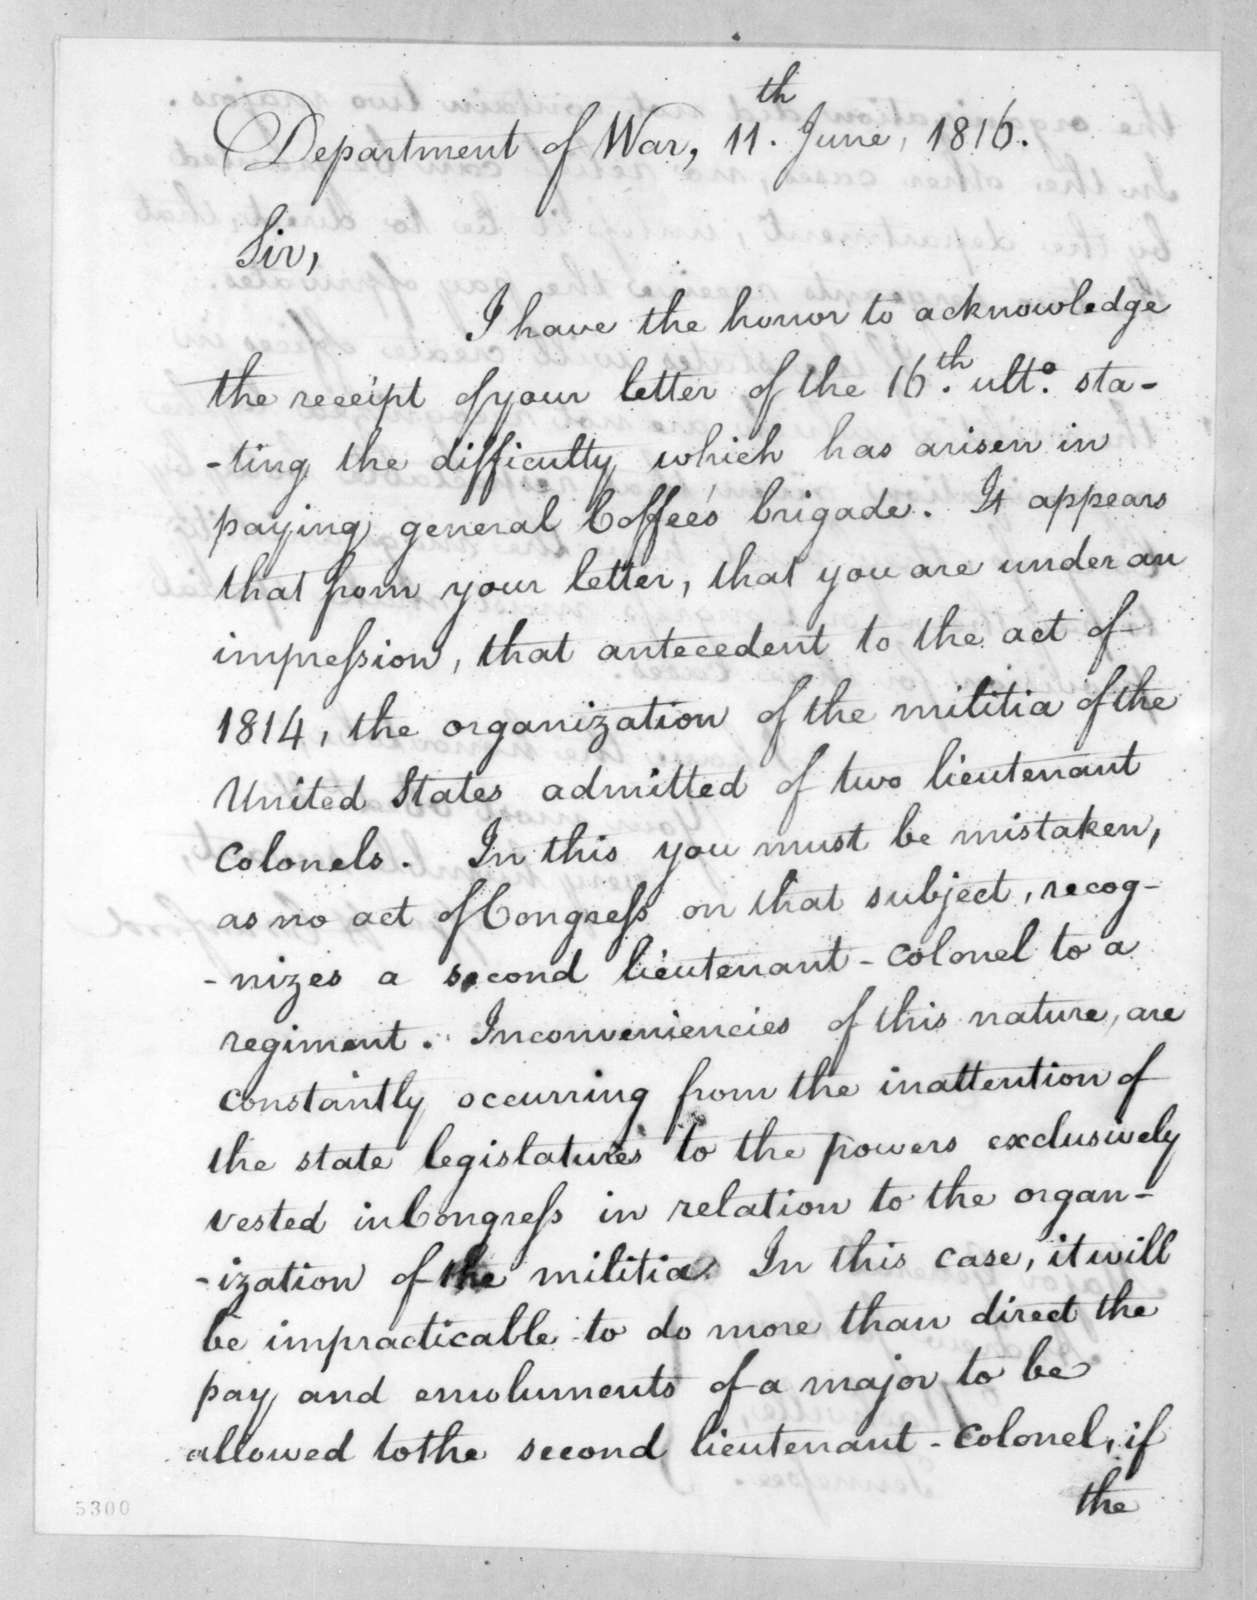 William Harris Crawford to Andrew Jackson, June 11, 1816